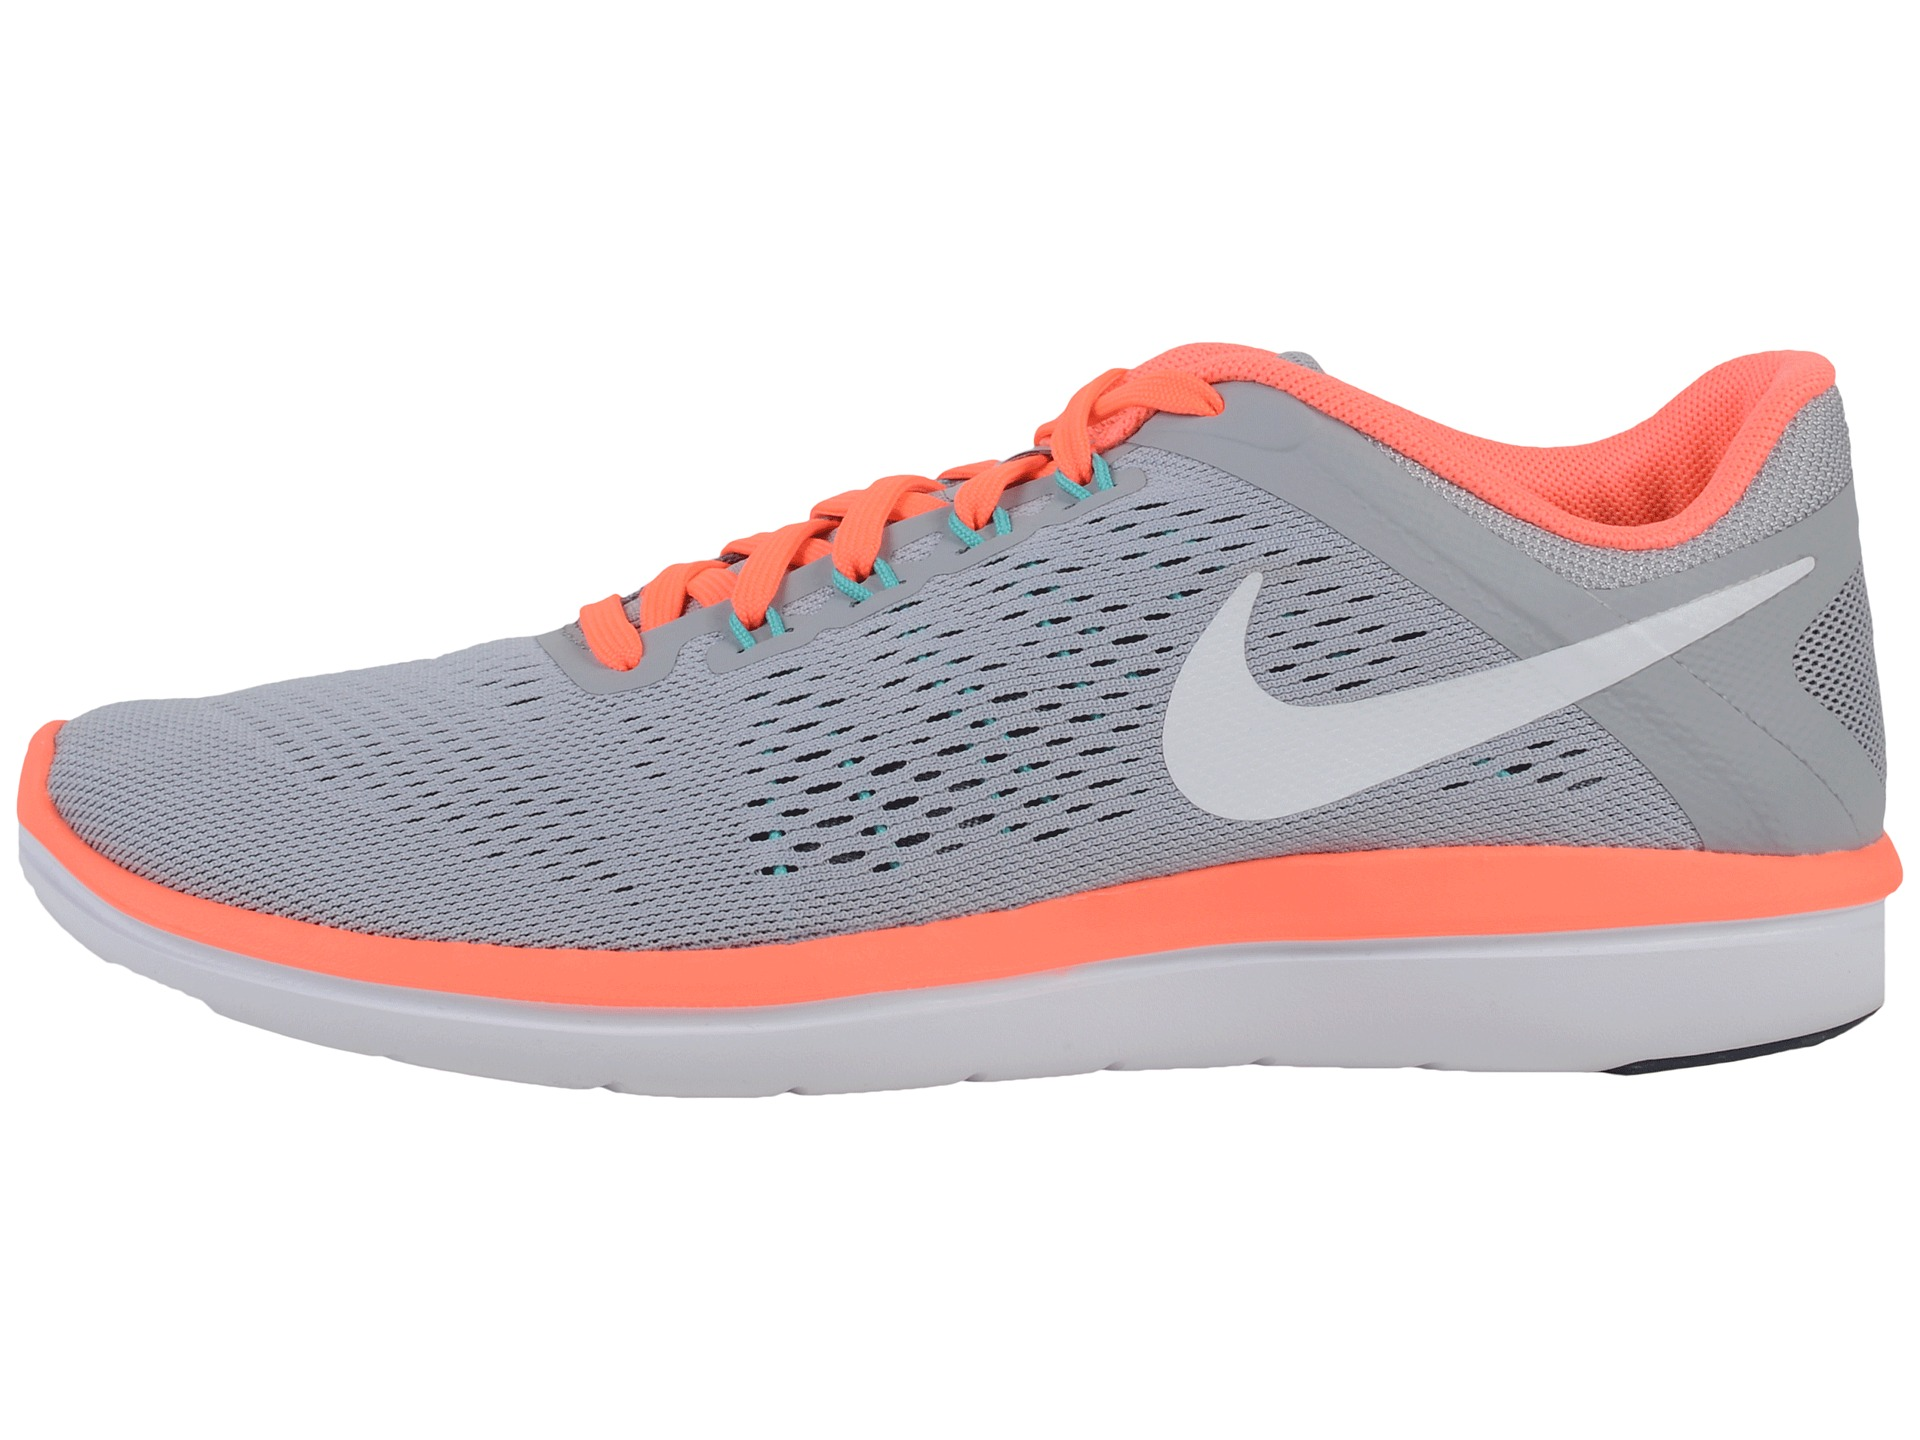 low priced 63e79 3f519 Nike lunarglide 4 fireberry pearl pink reflective silver high quality women Nike  LunarGlide 9 larger image nike lunarglide 5 womens zappos nike lunarglide 8  ...